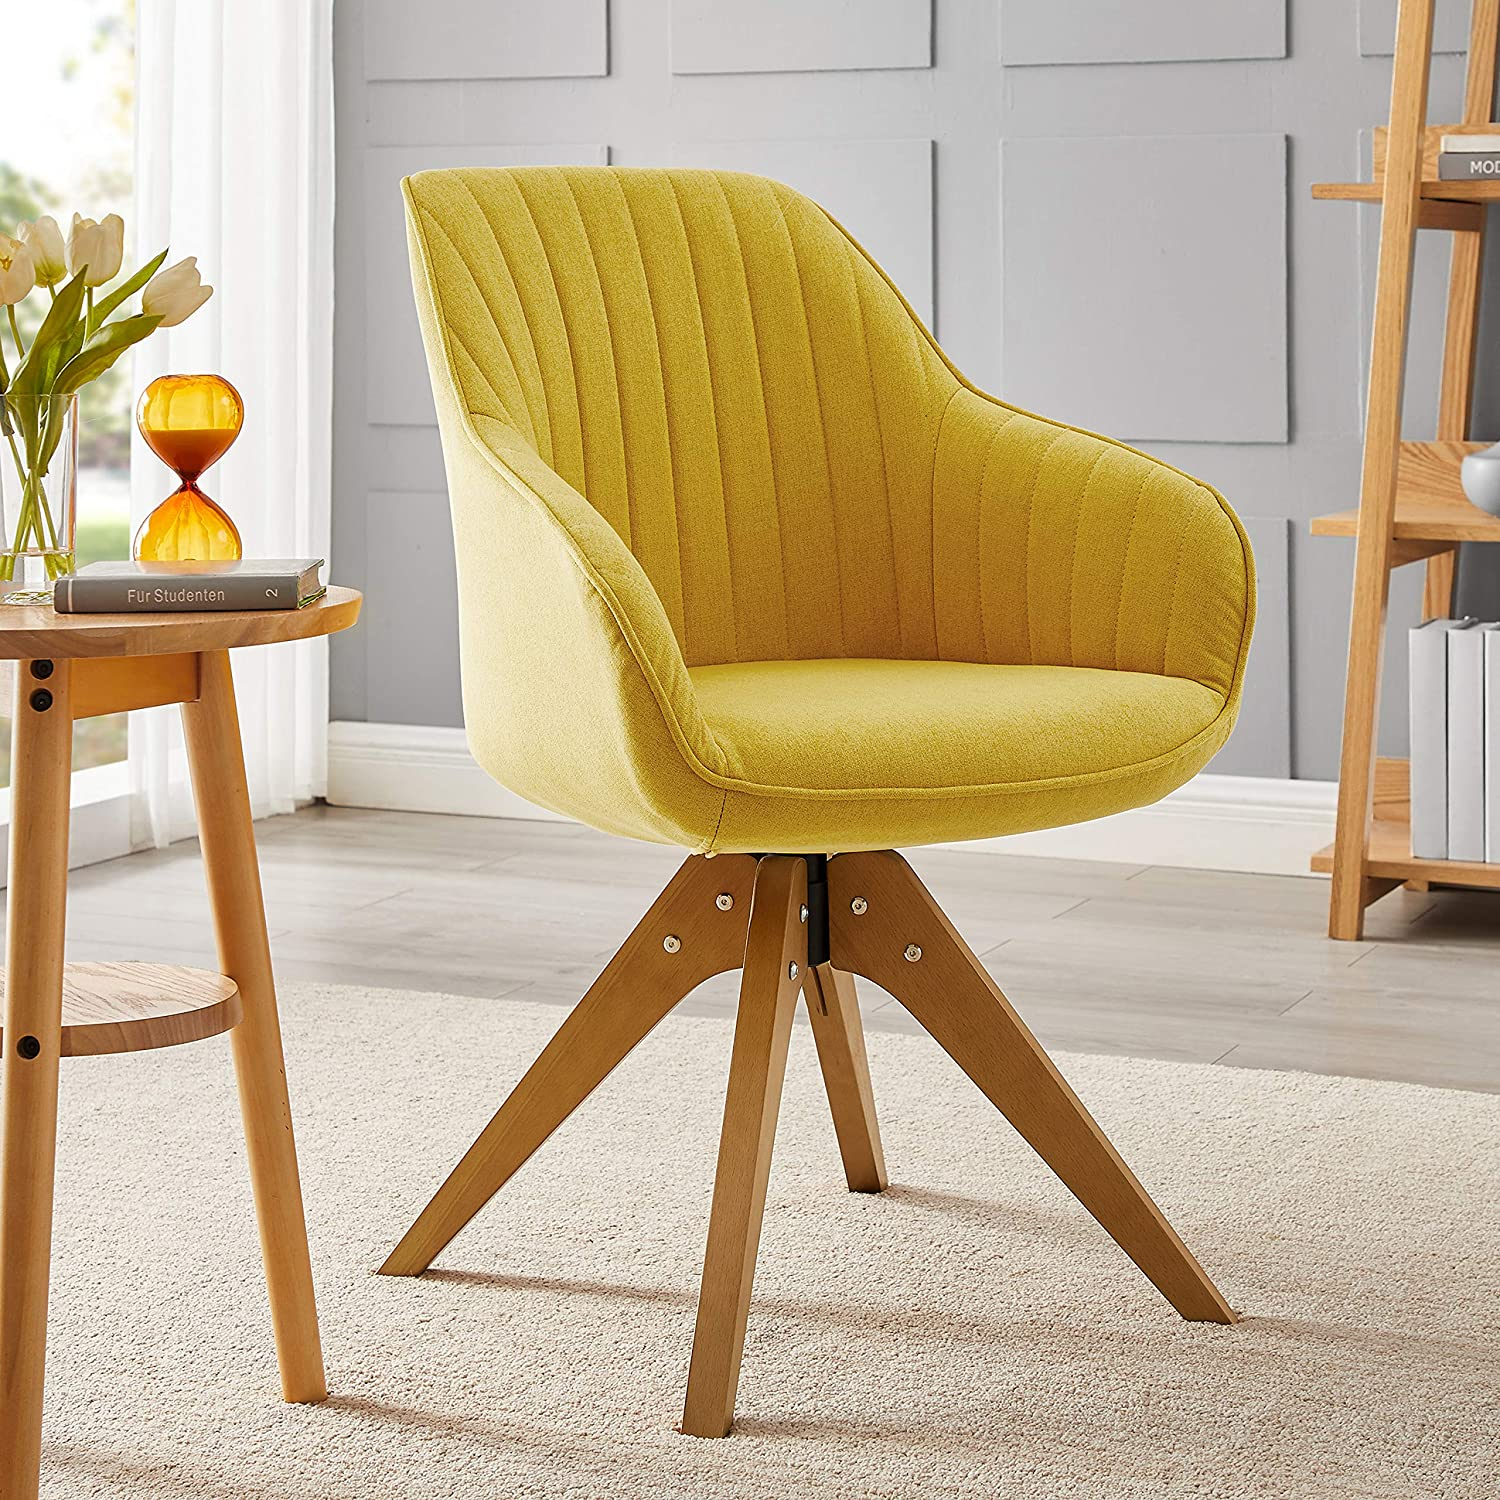 Art Leon Mid-Century Modern Swivel Accent Chair Medium Yellow with Wood Legs Armchair for Home Office Study Living Room Vanity Bedroom